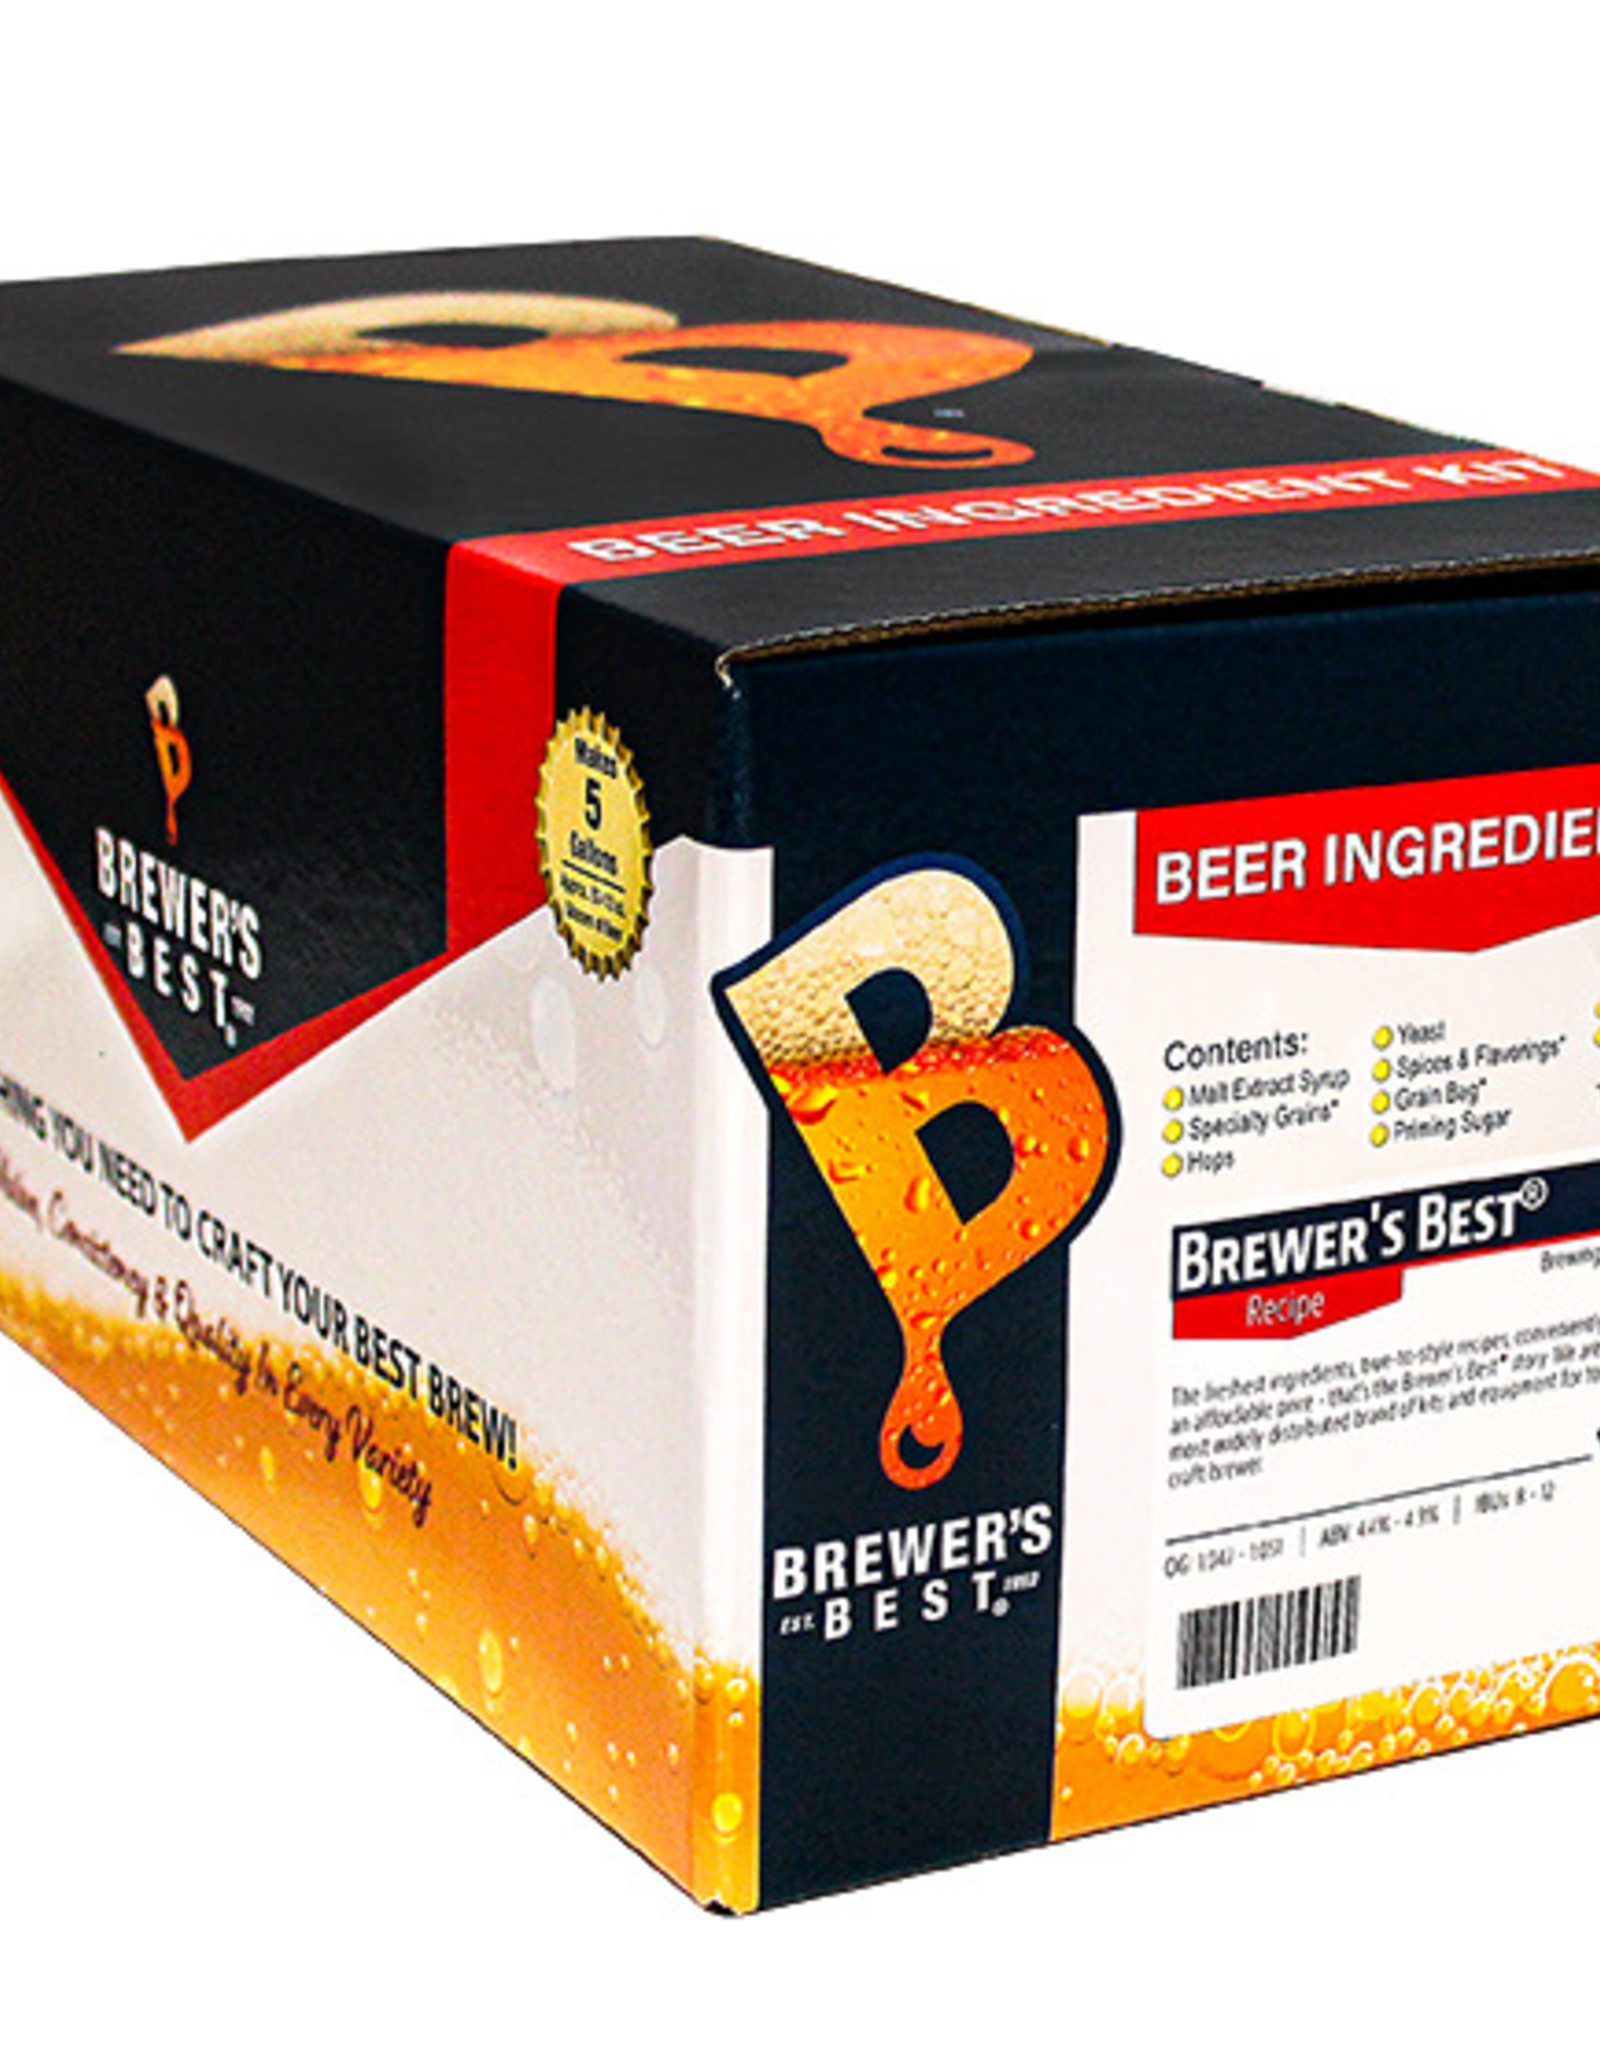 BREWERS BEST A rich, complex high-gravity specialty ale. It?s a full-bodied brew with plenty of hop character to balance this Imperial style Brown Ale. The slight caramel and chocolate flavors are followed by a nutty aftertaste. Includes premium Safale S-04 yeast.